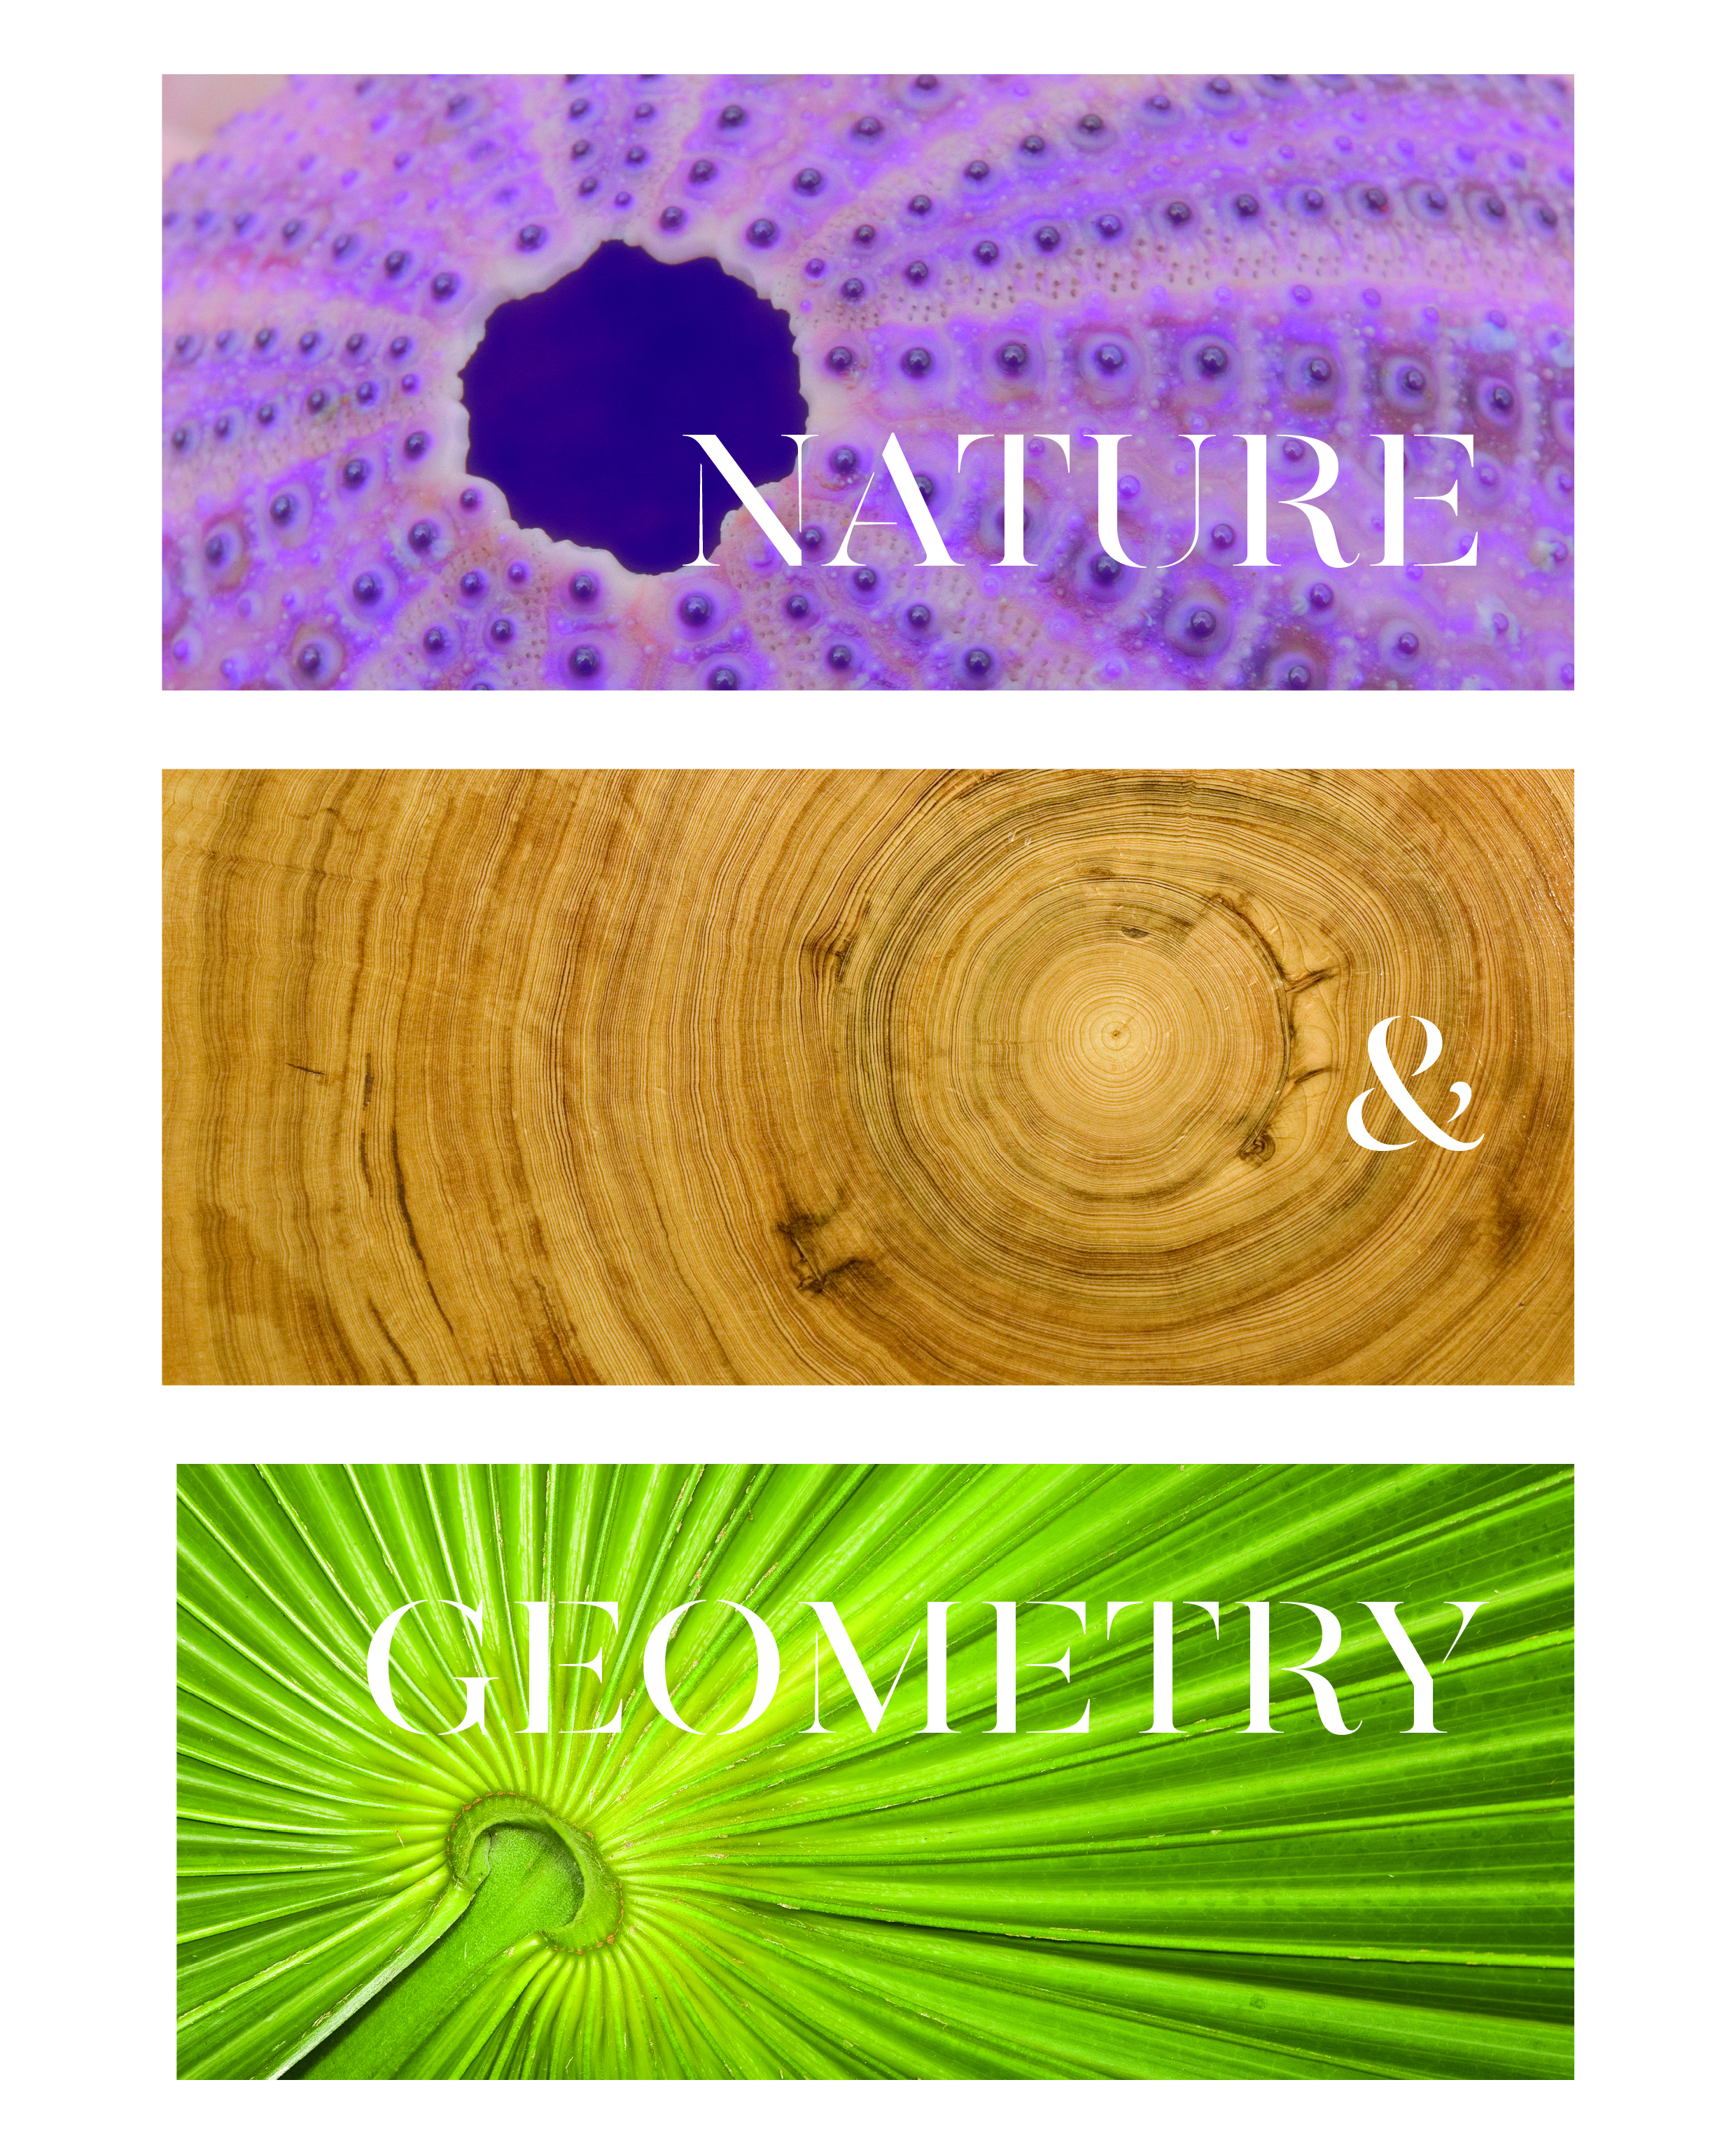 Nature & Geometry front cover.jpg